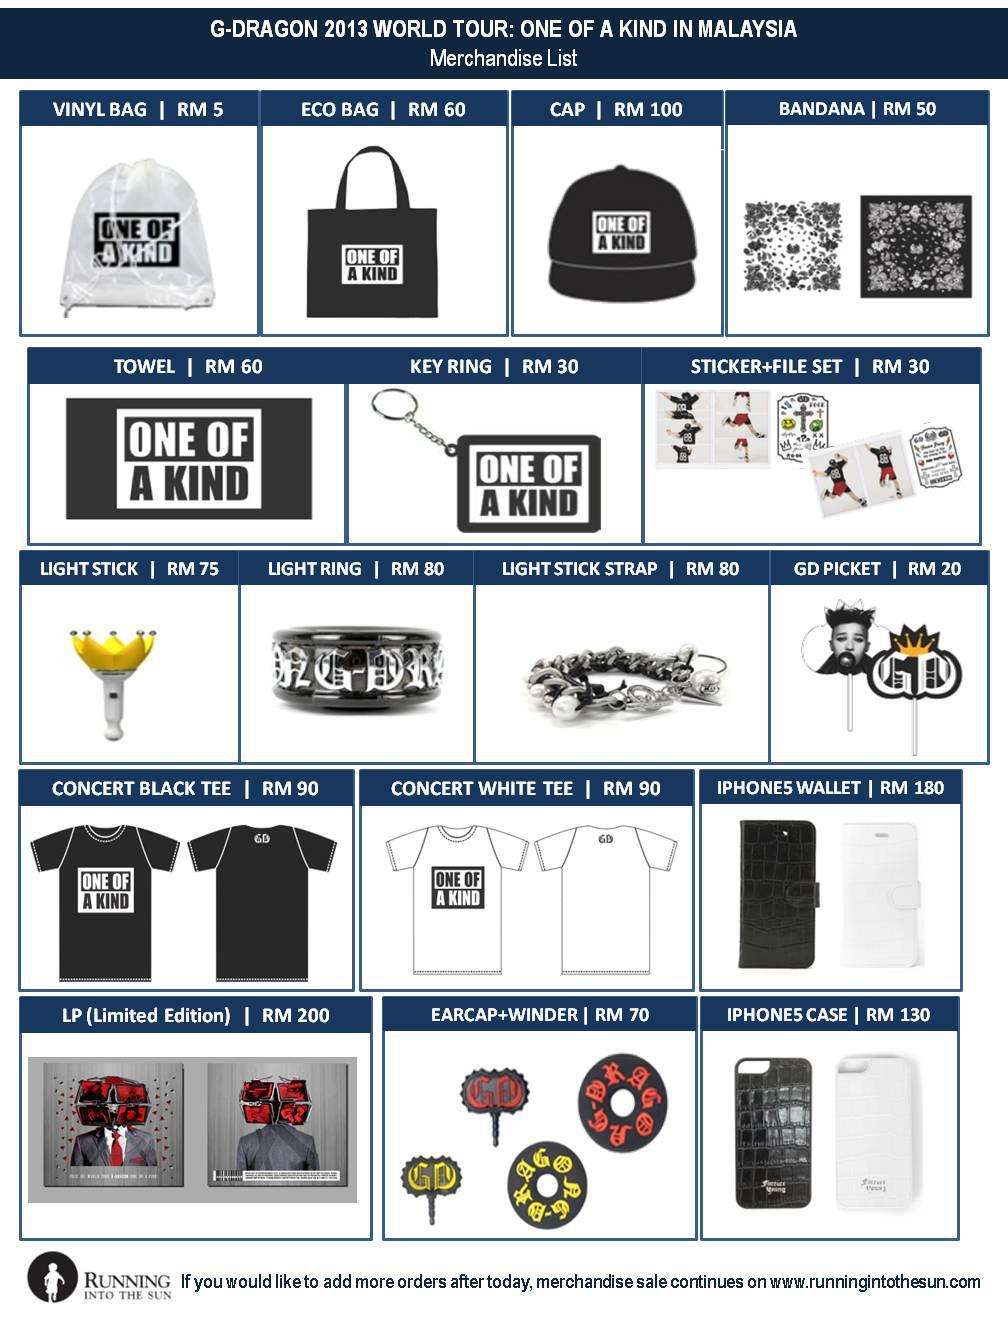 G Dragon merchandise